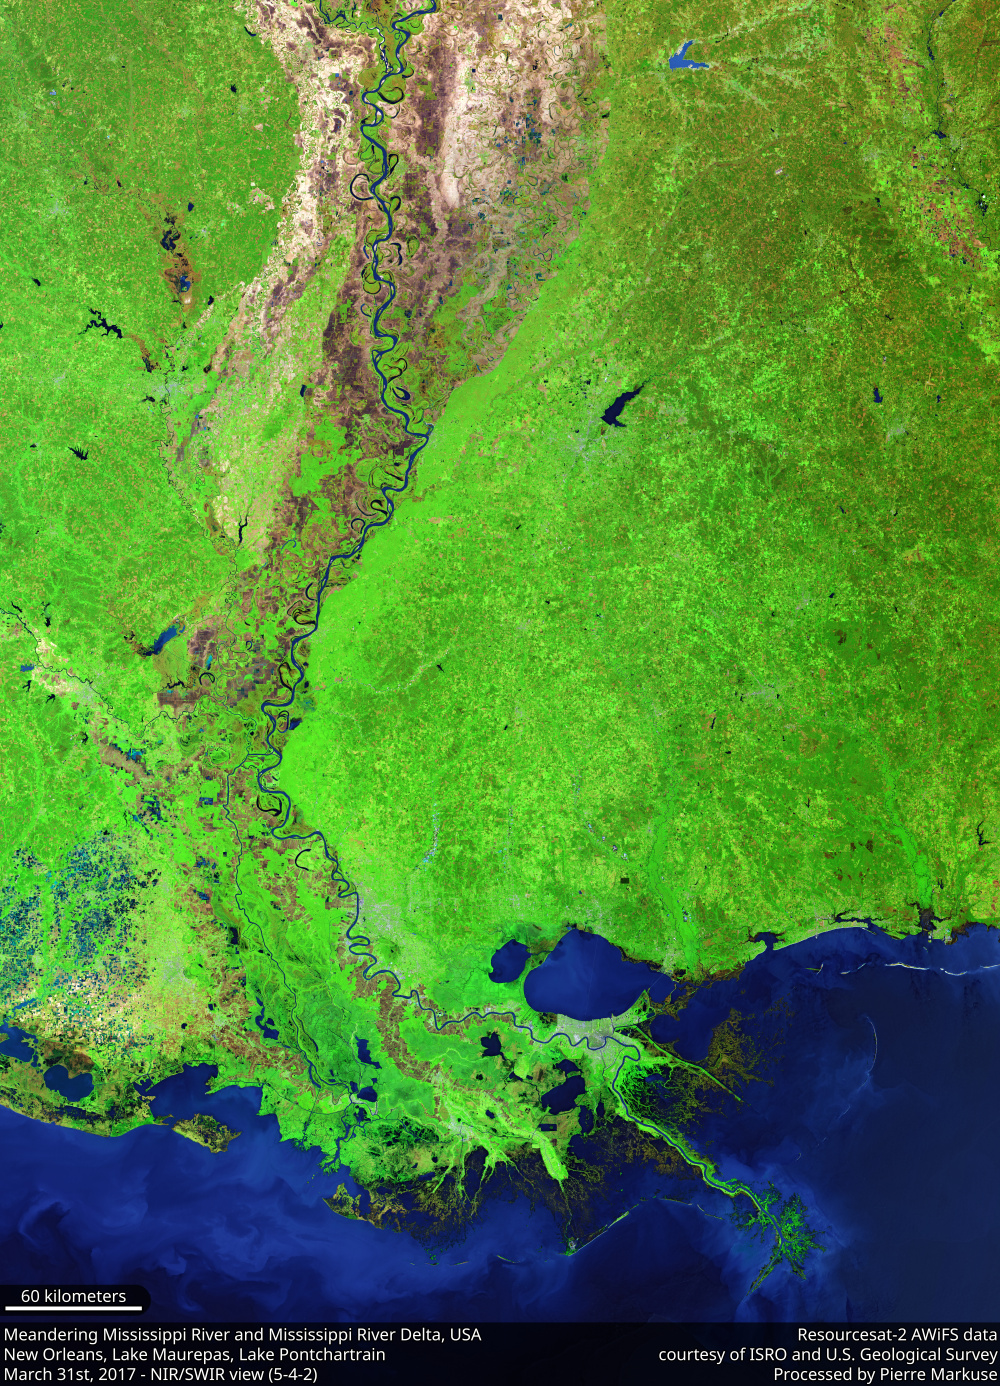 Mississippi River and its delta